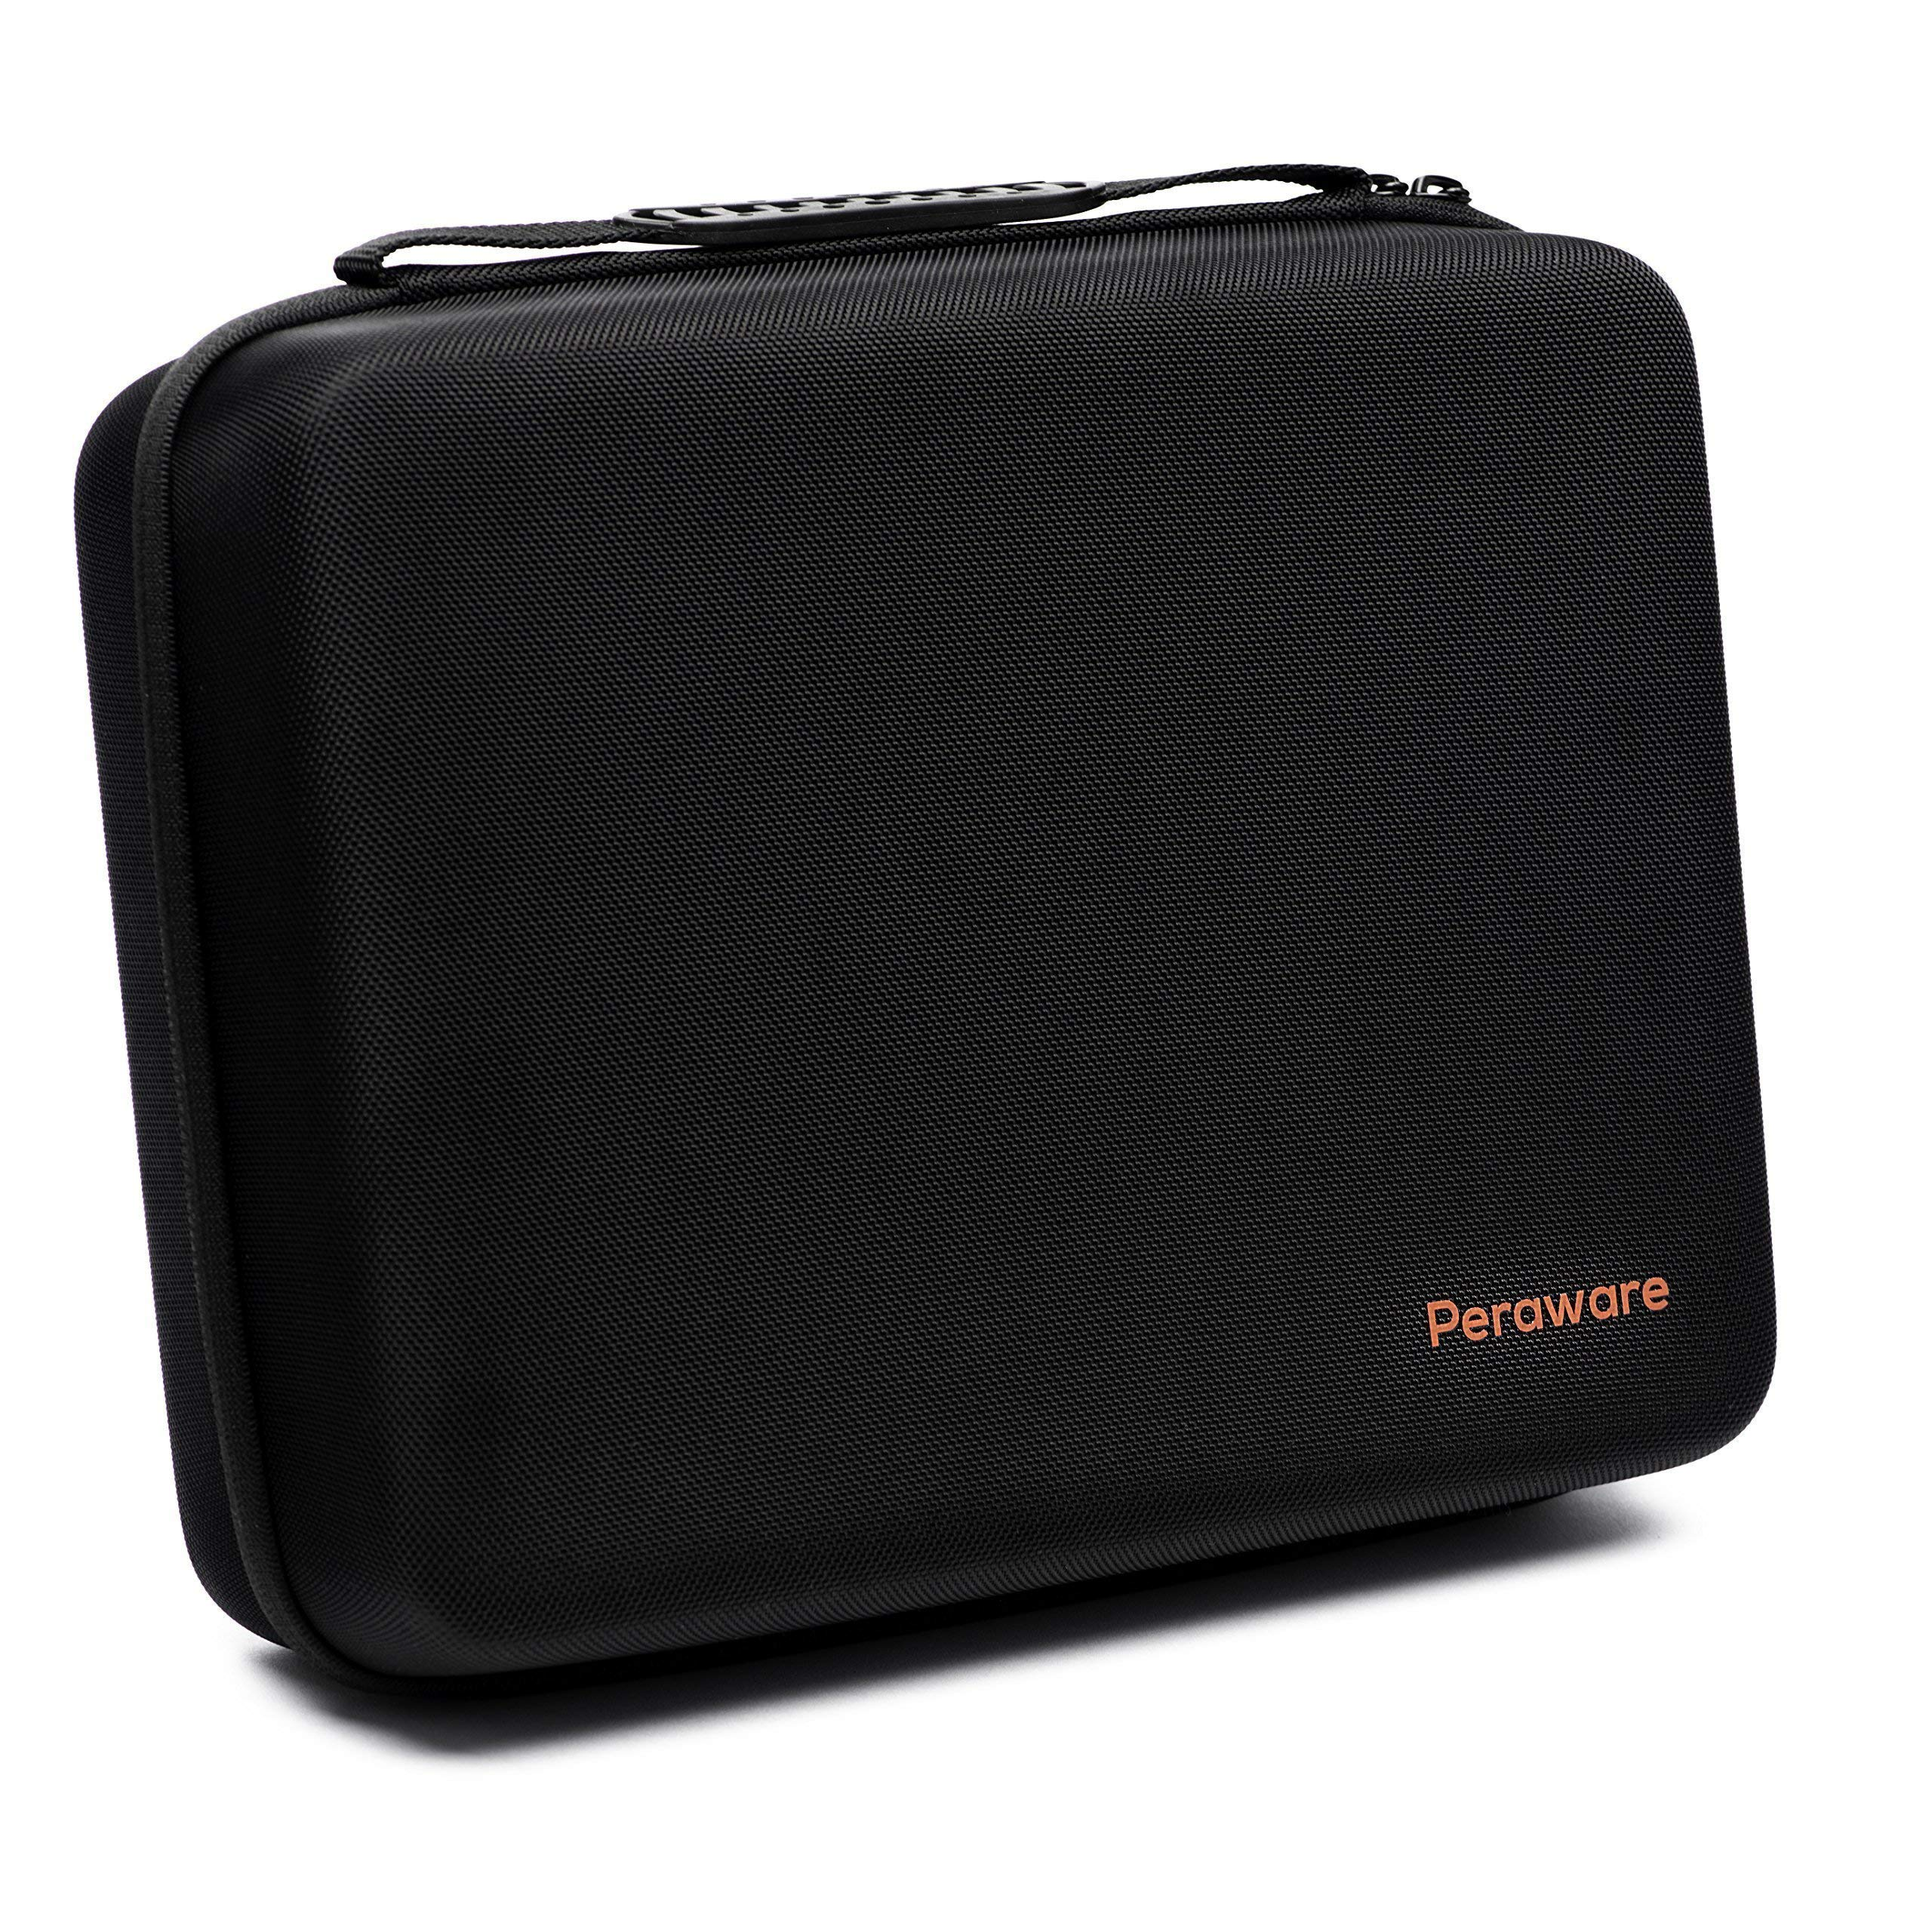 Peraware Universal Storage Carrying Case for Small Electronics Hard Drives Portable Devices and Accessories